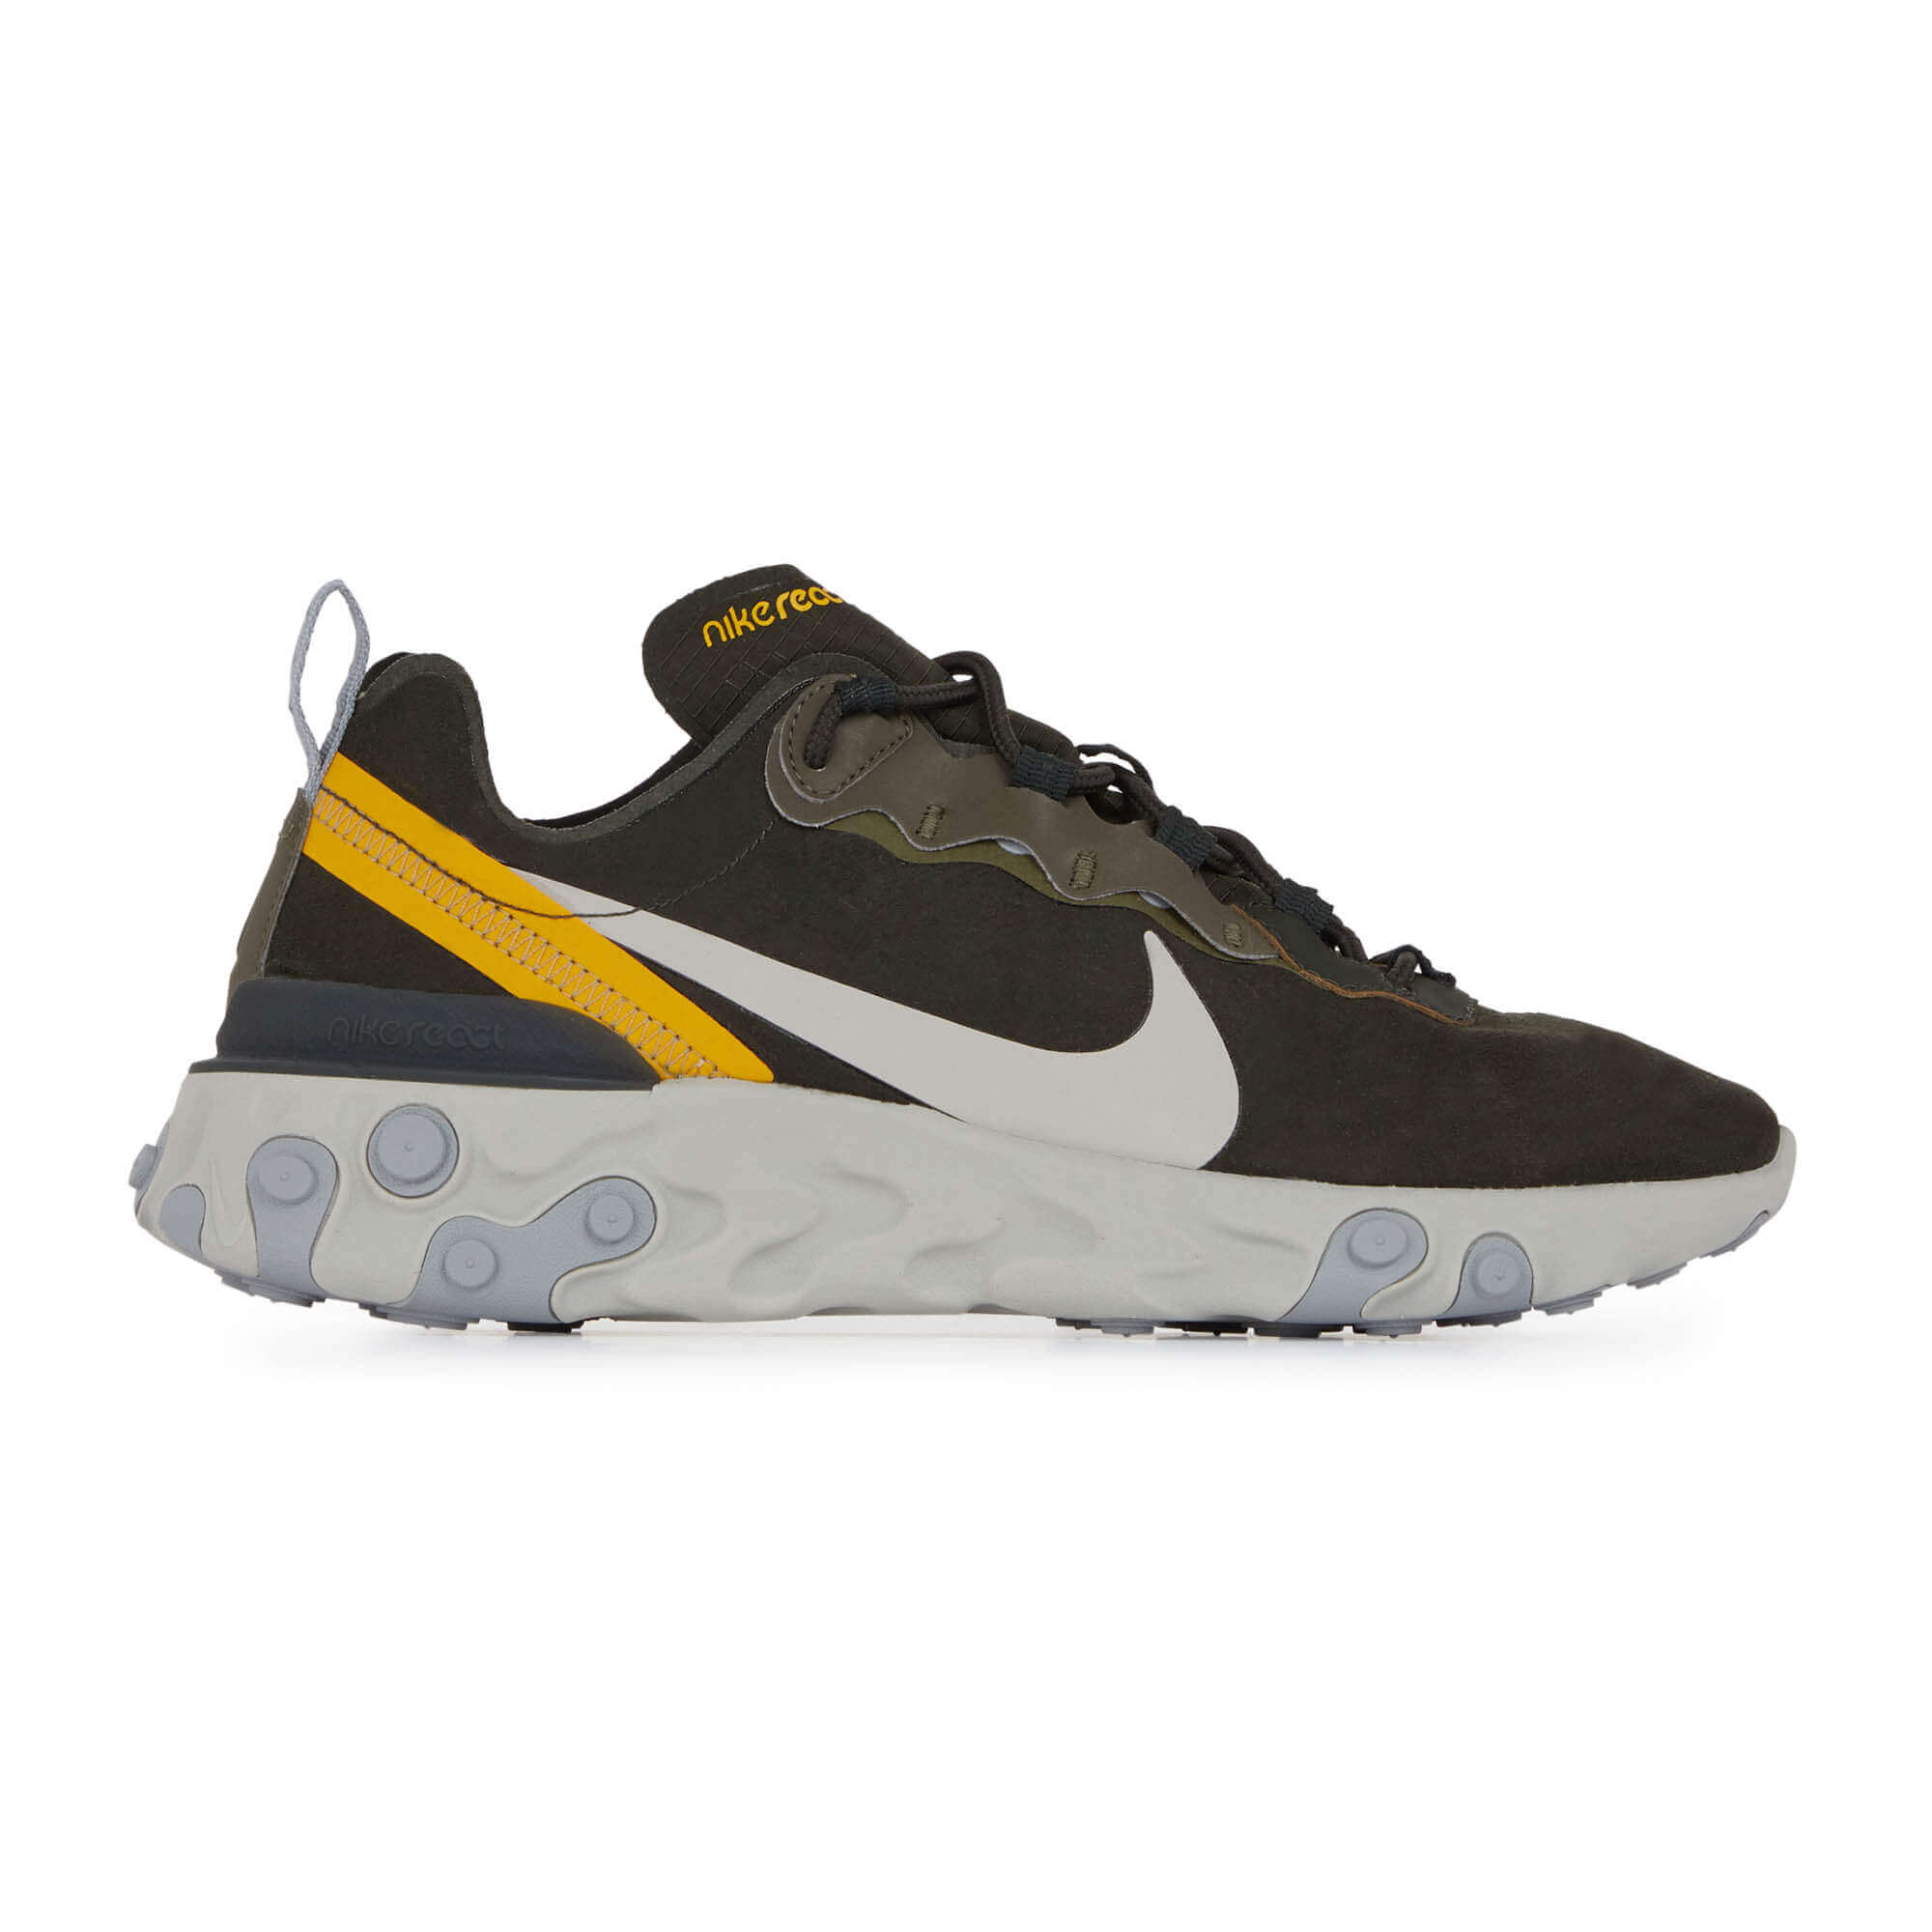 Nike React Element 55 CQ6366 300